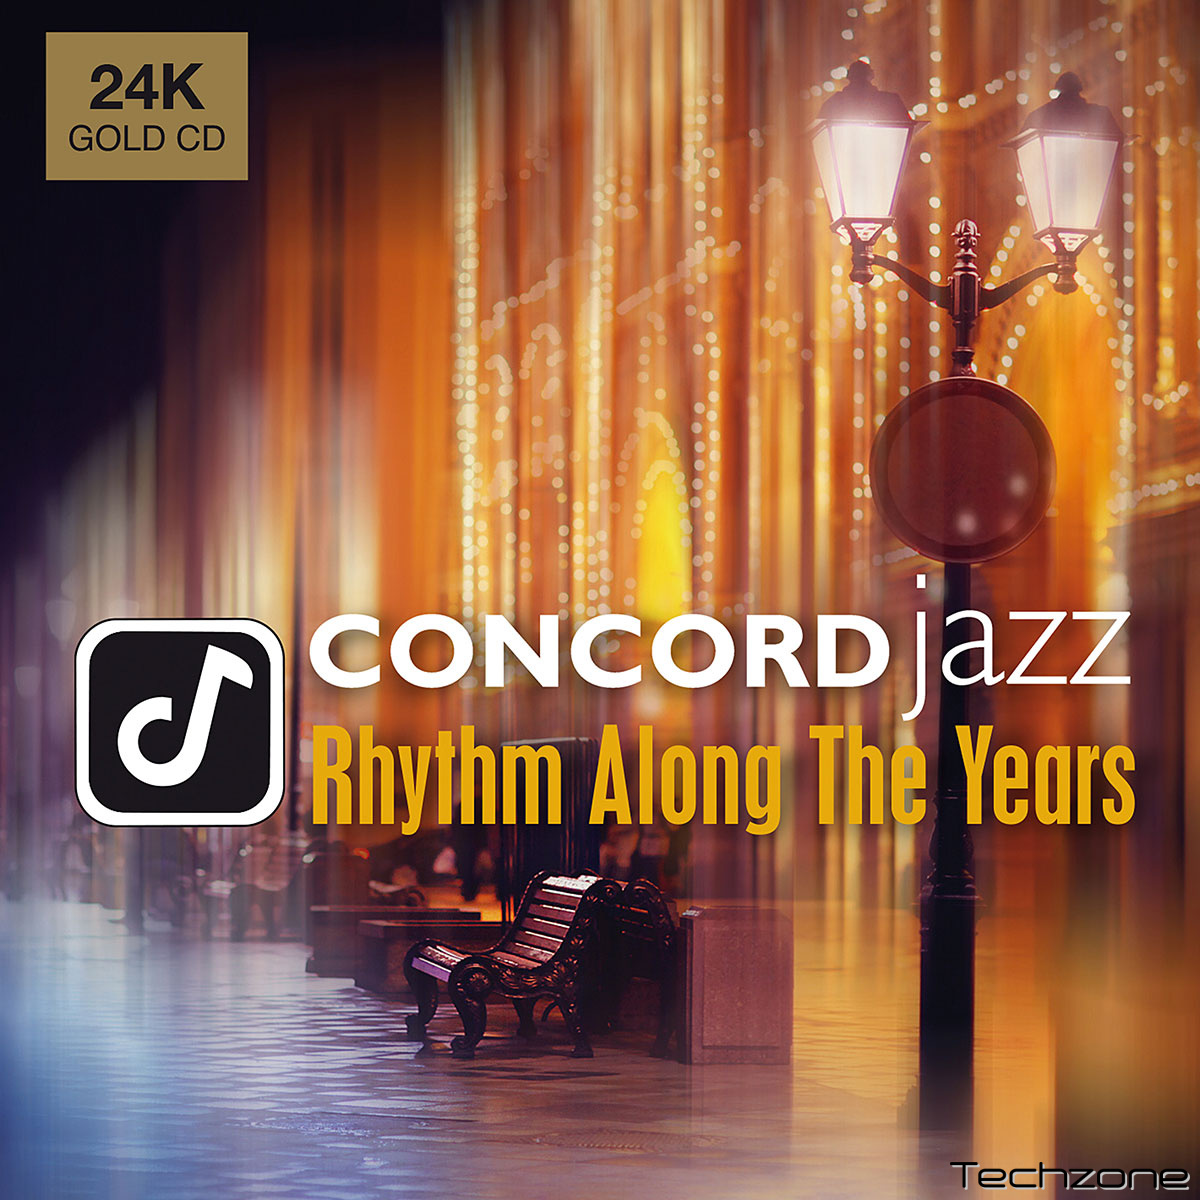 CD диск Rhythm Along the Years (24K) – techzone.com.ua